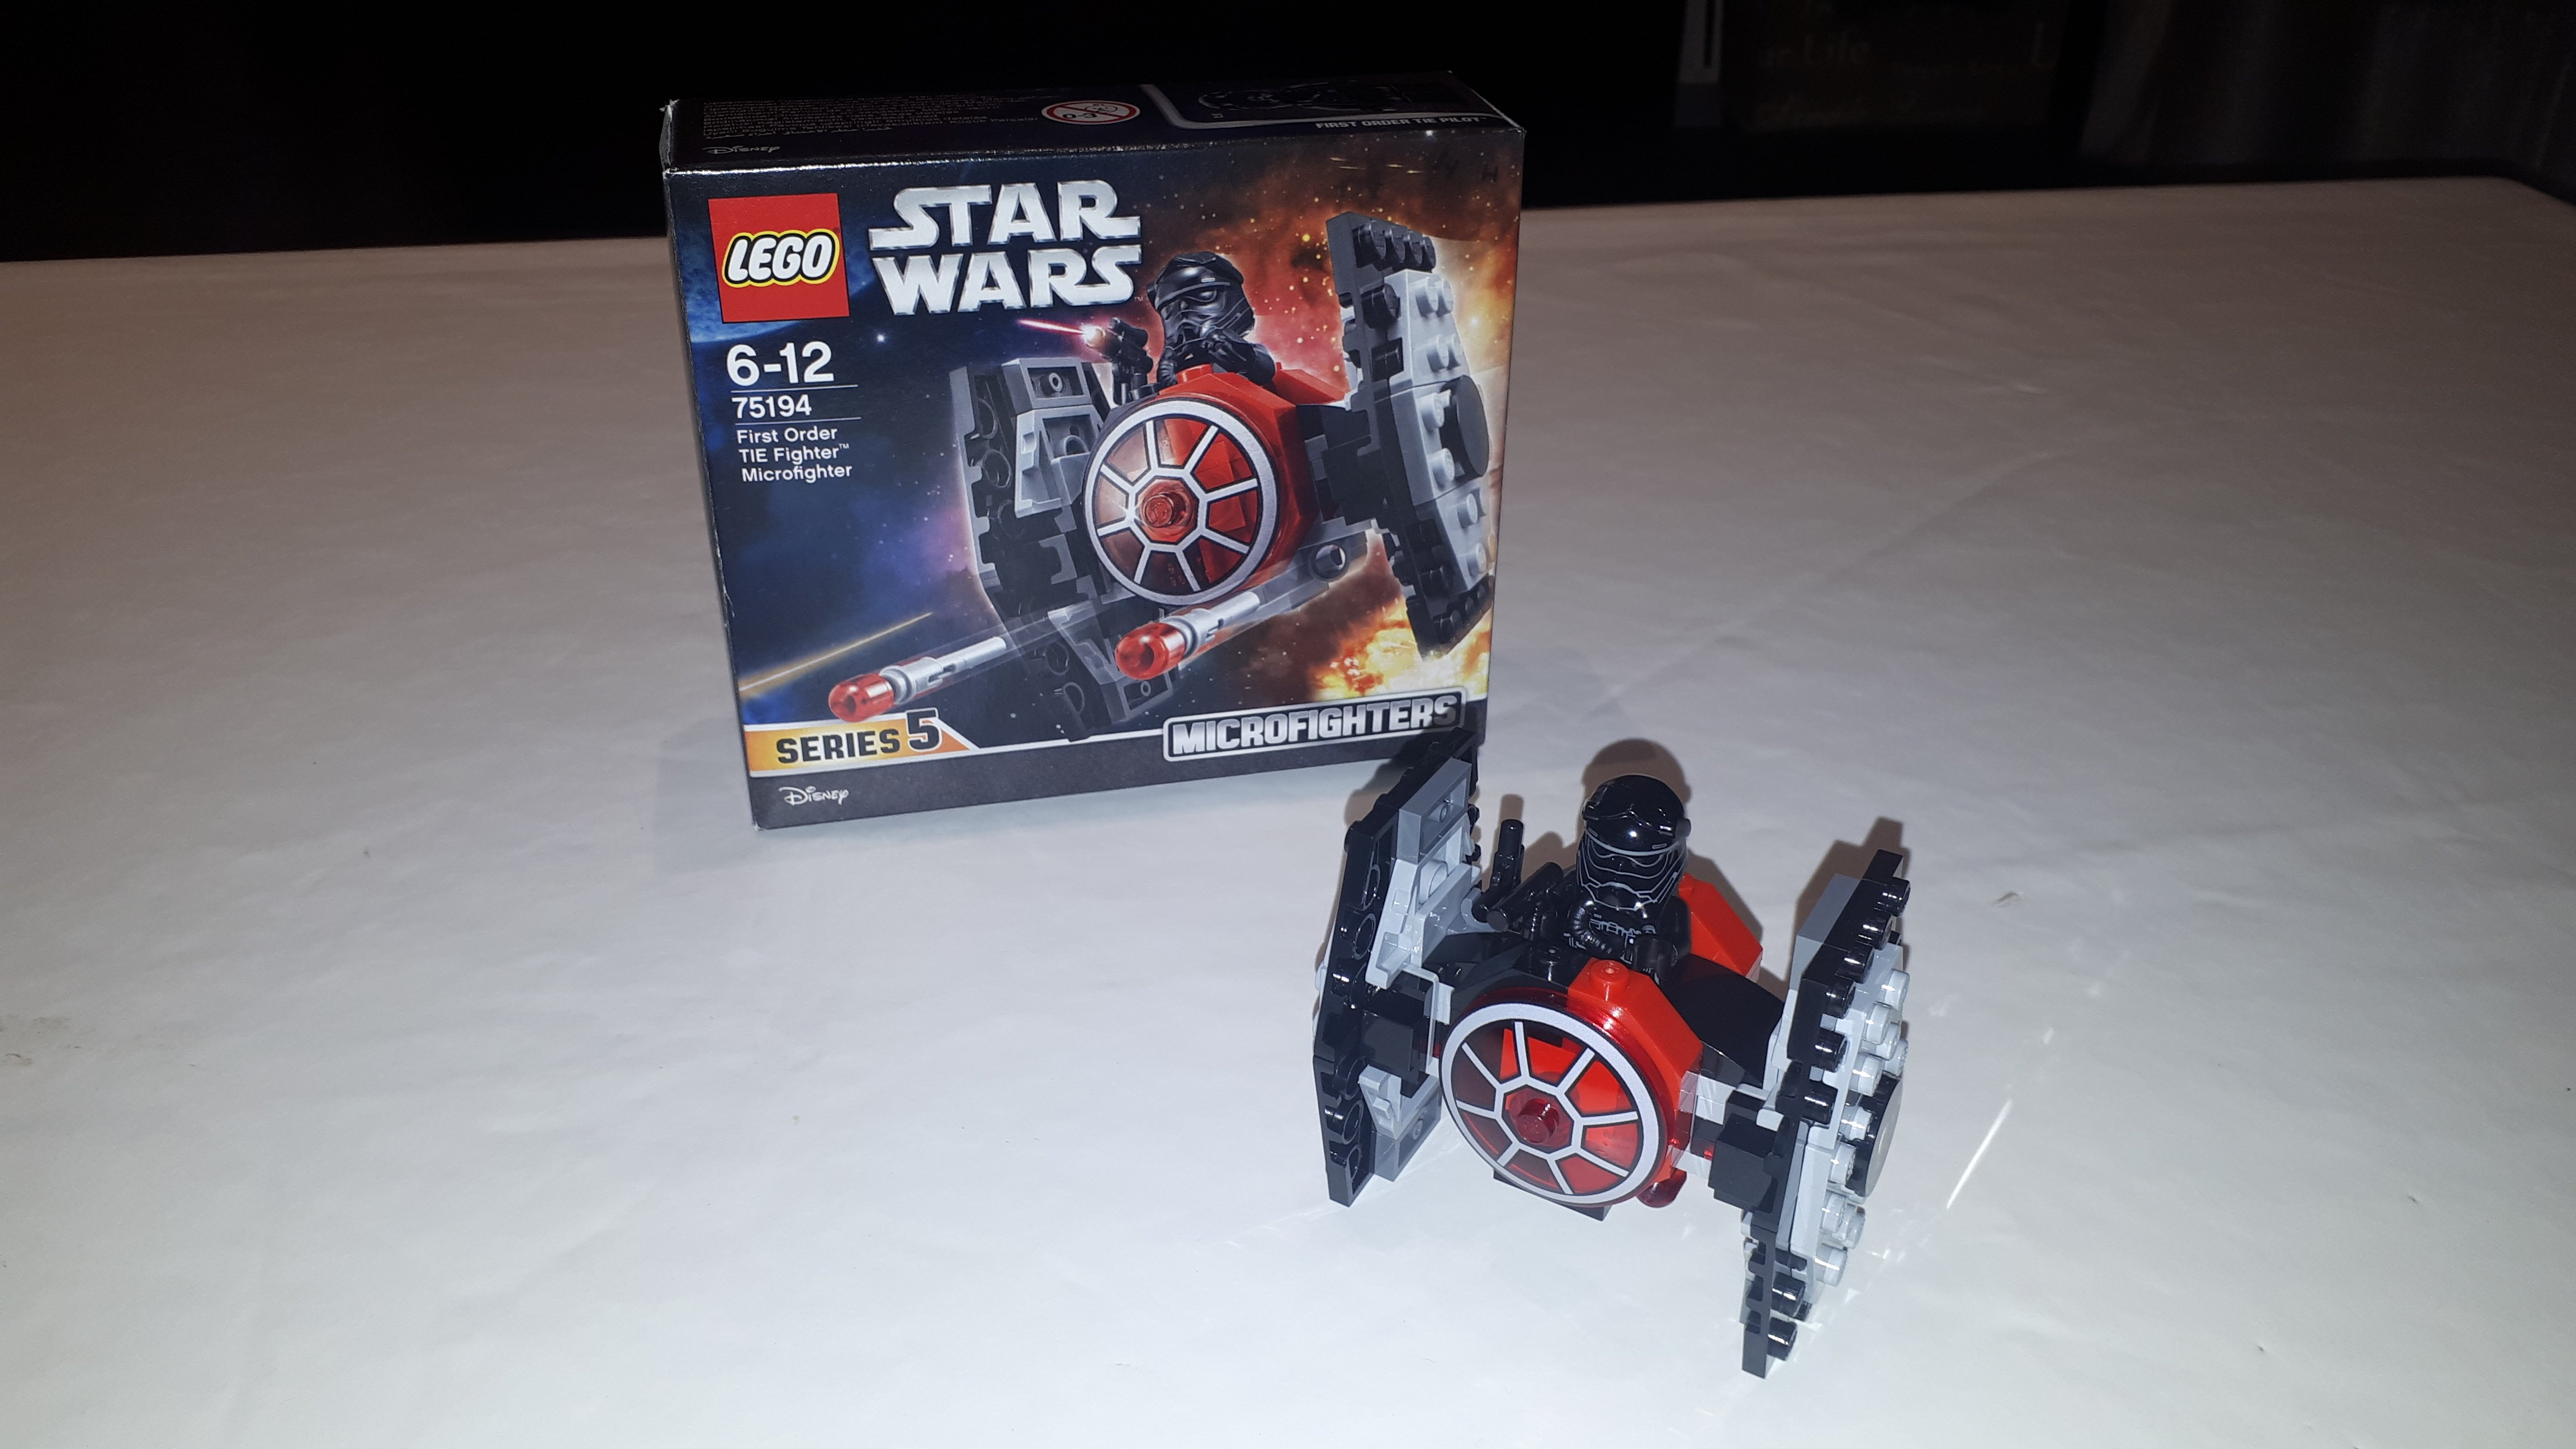 Lego Star Wars – Microfighters First Order Tie Fighter